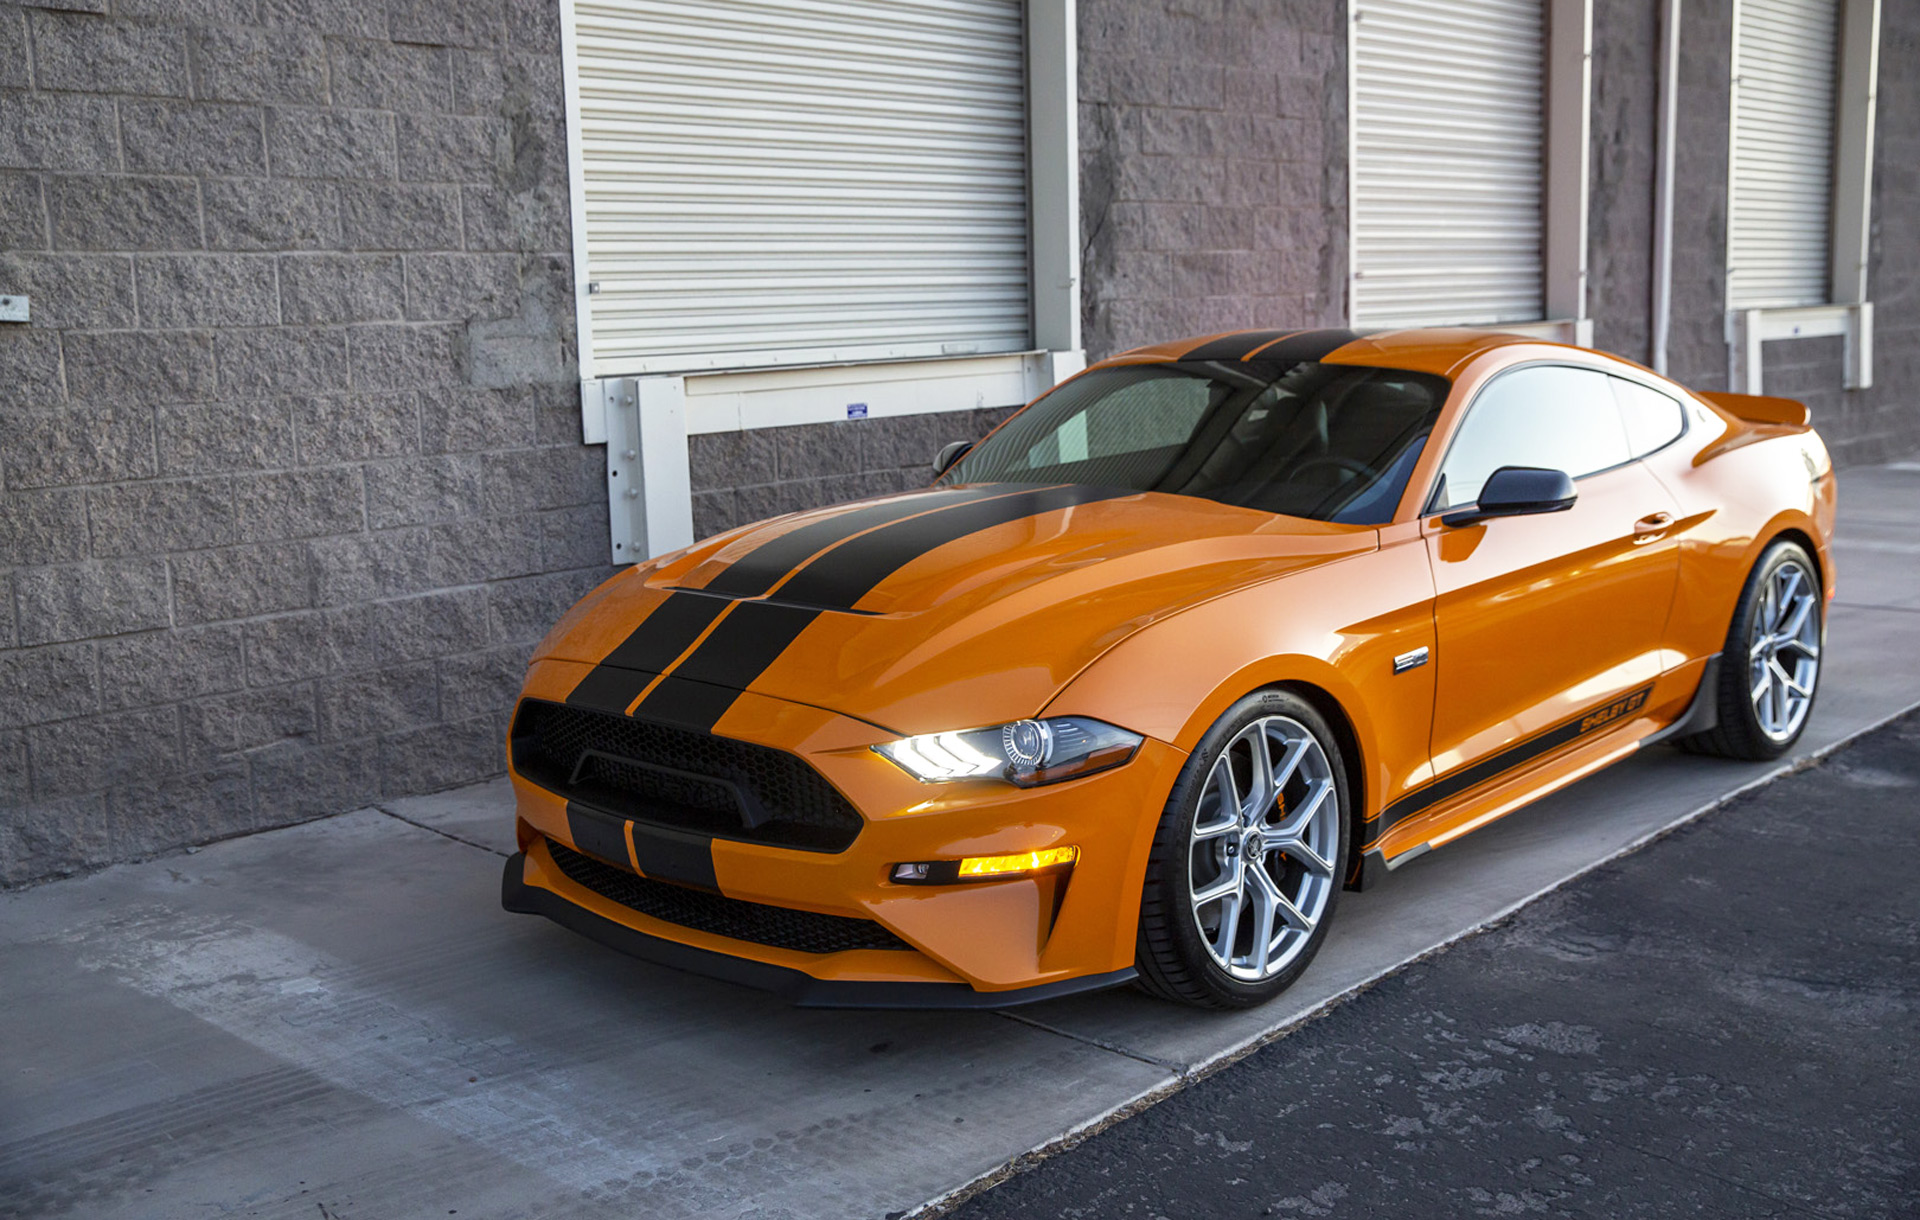 2021 Ford Shelby GT, 2022 BMW X3, 2023 Porsche Cayenne: This Week's Top Photos